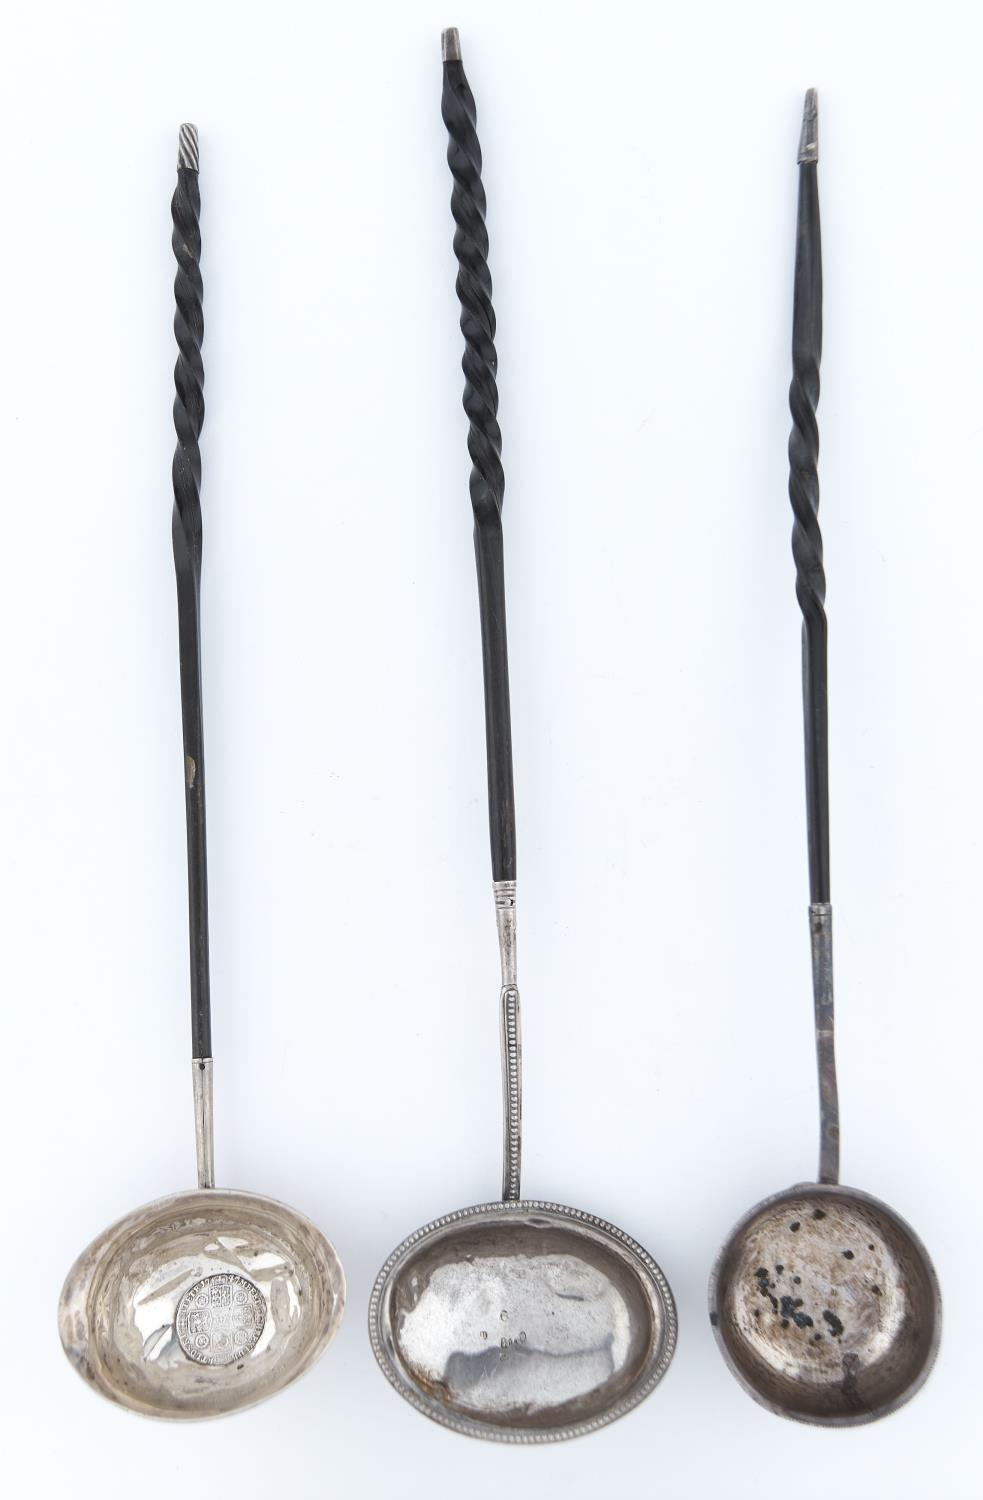 THREE SILVER PUNCH LADLES WITH TWISTED BALEEN HANDLE Wear and dents, handles undamaged